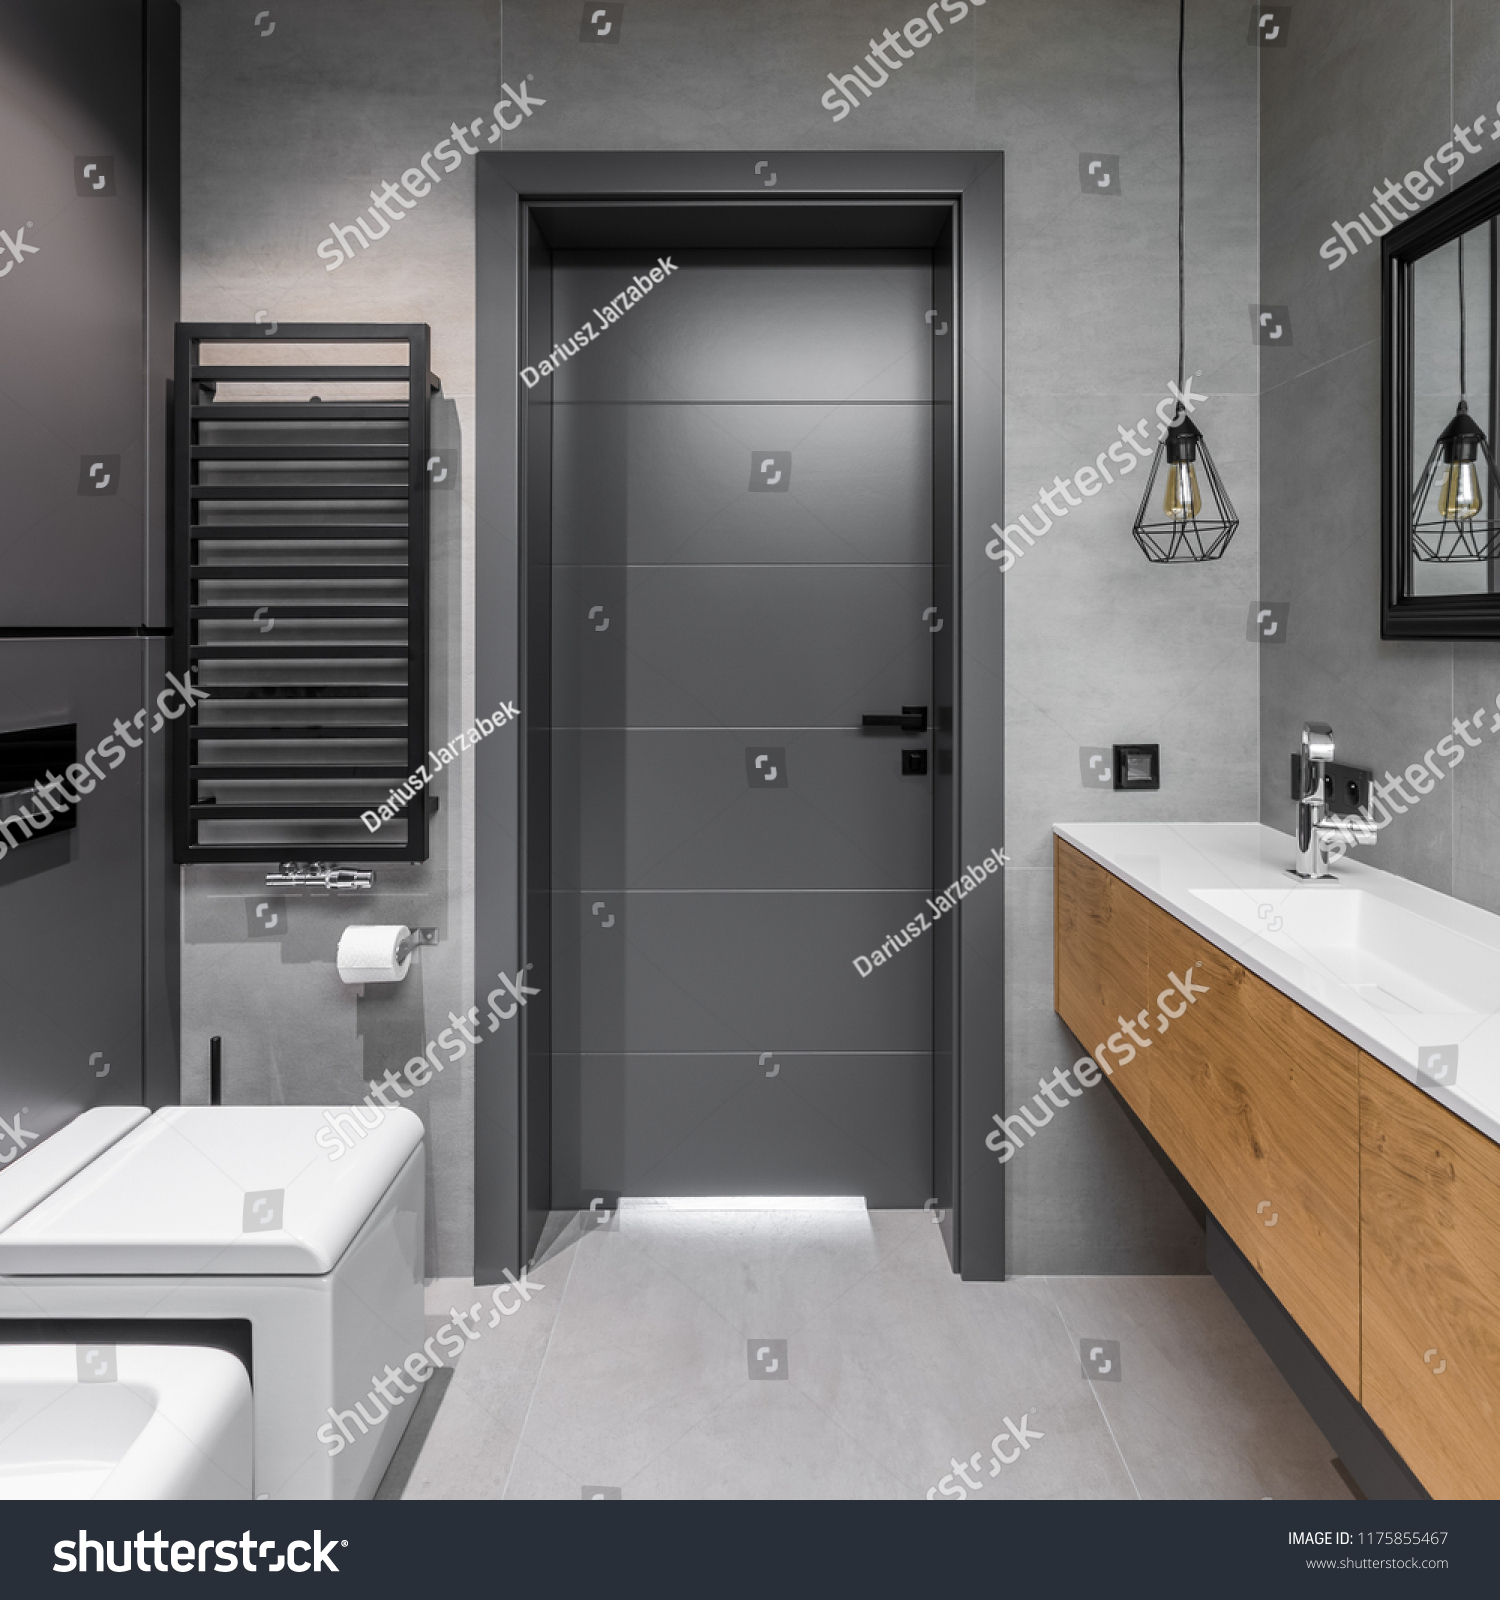 Bathroom Toilet Cabinets Cubic Toilet Wooden Cabinets Modern Gray Stock Photo Edit Now